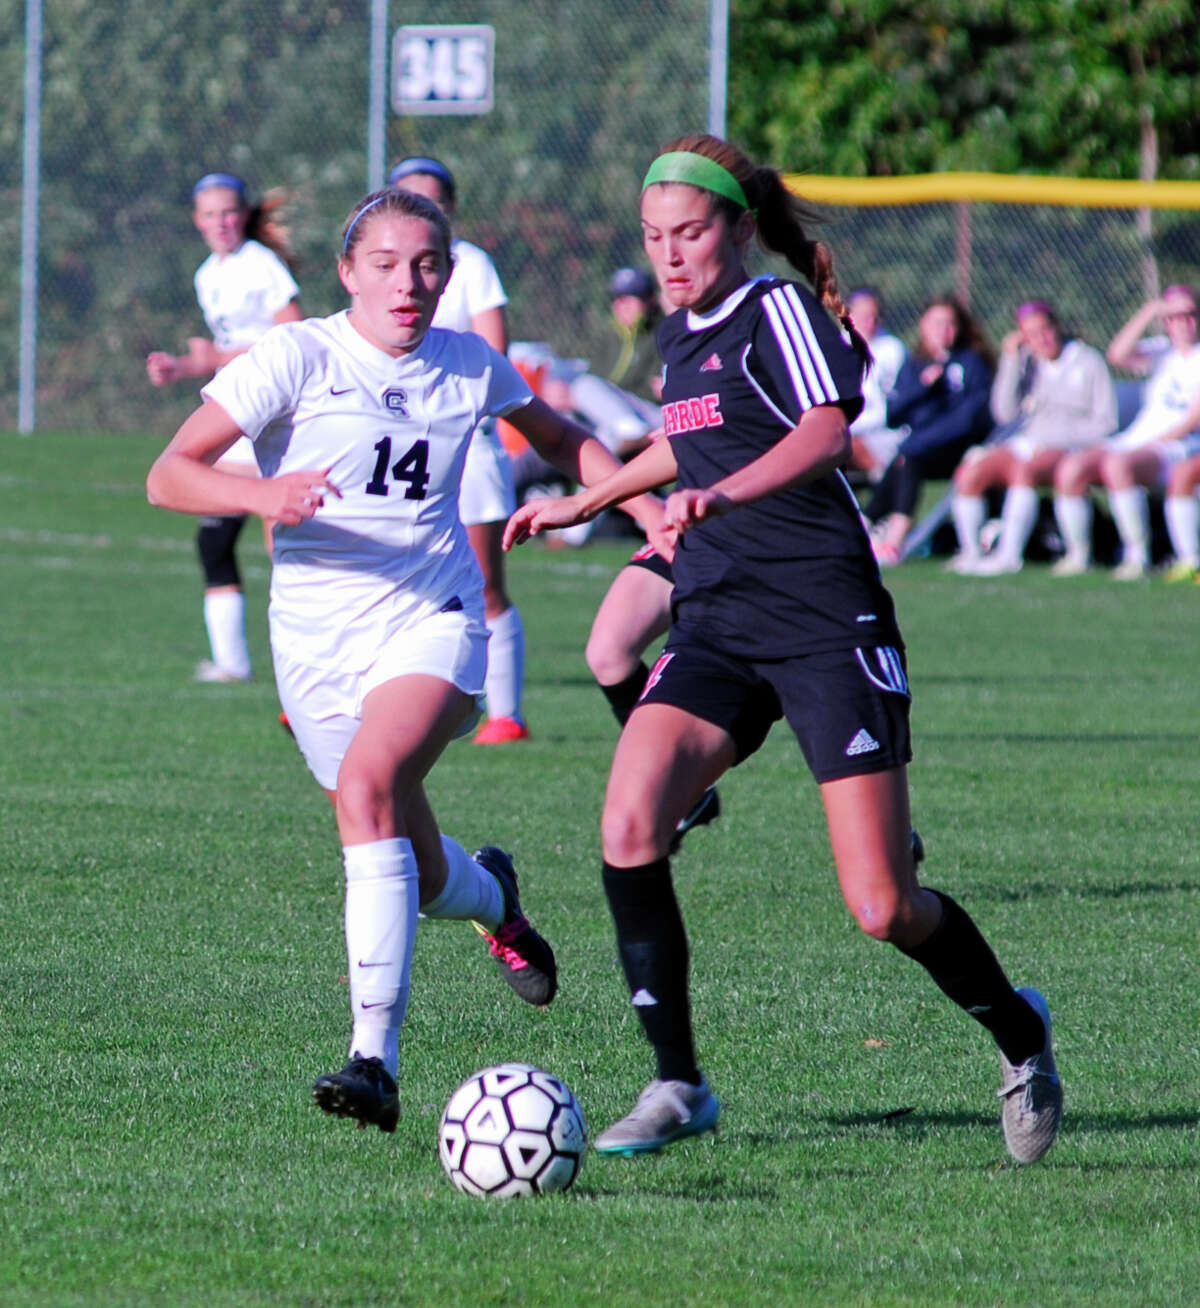 Staples' Lydia Shaw, left, and Warde's Claire Pullen battle during a girls soccer game on Tuesday, October 20th, 2015 in Westport, Connecticut. Warde won 2-1.